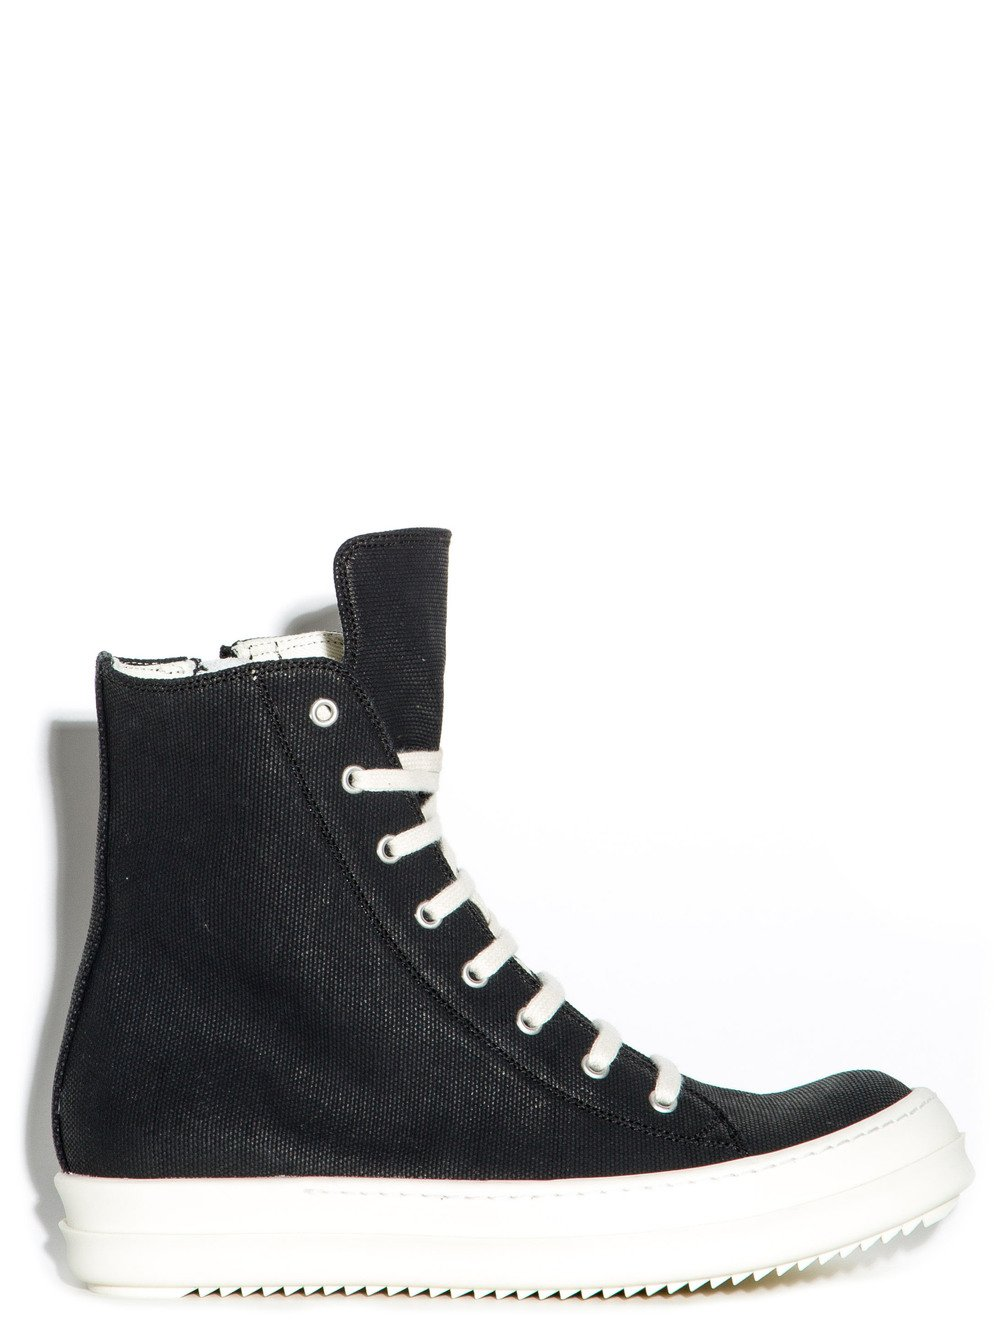 Sneakers for Women On Sale, Black, Canvas, 2017, 7.5 Rick Owens